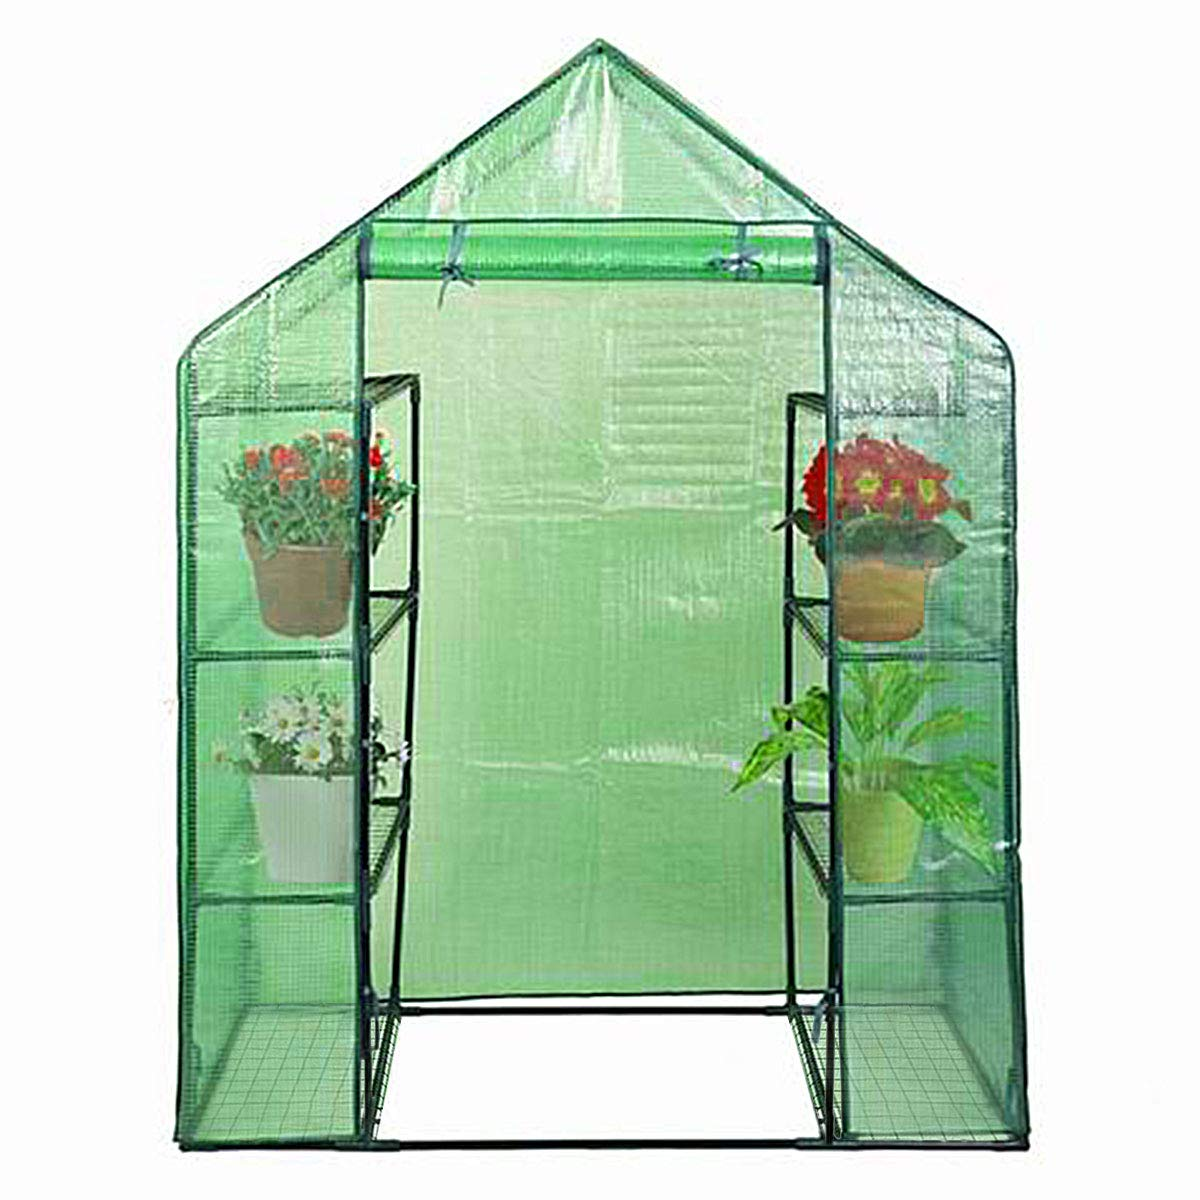 Giantex Mini Portable Walk-in Plant Greenhouse for Outdoors/Indoors 4 Tier 8 Shelves Garden Green House by Giantex (Image #1)